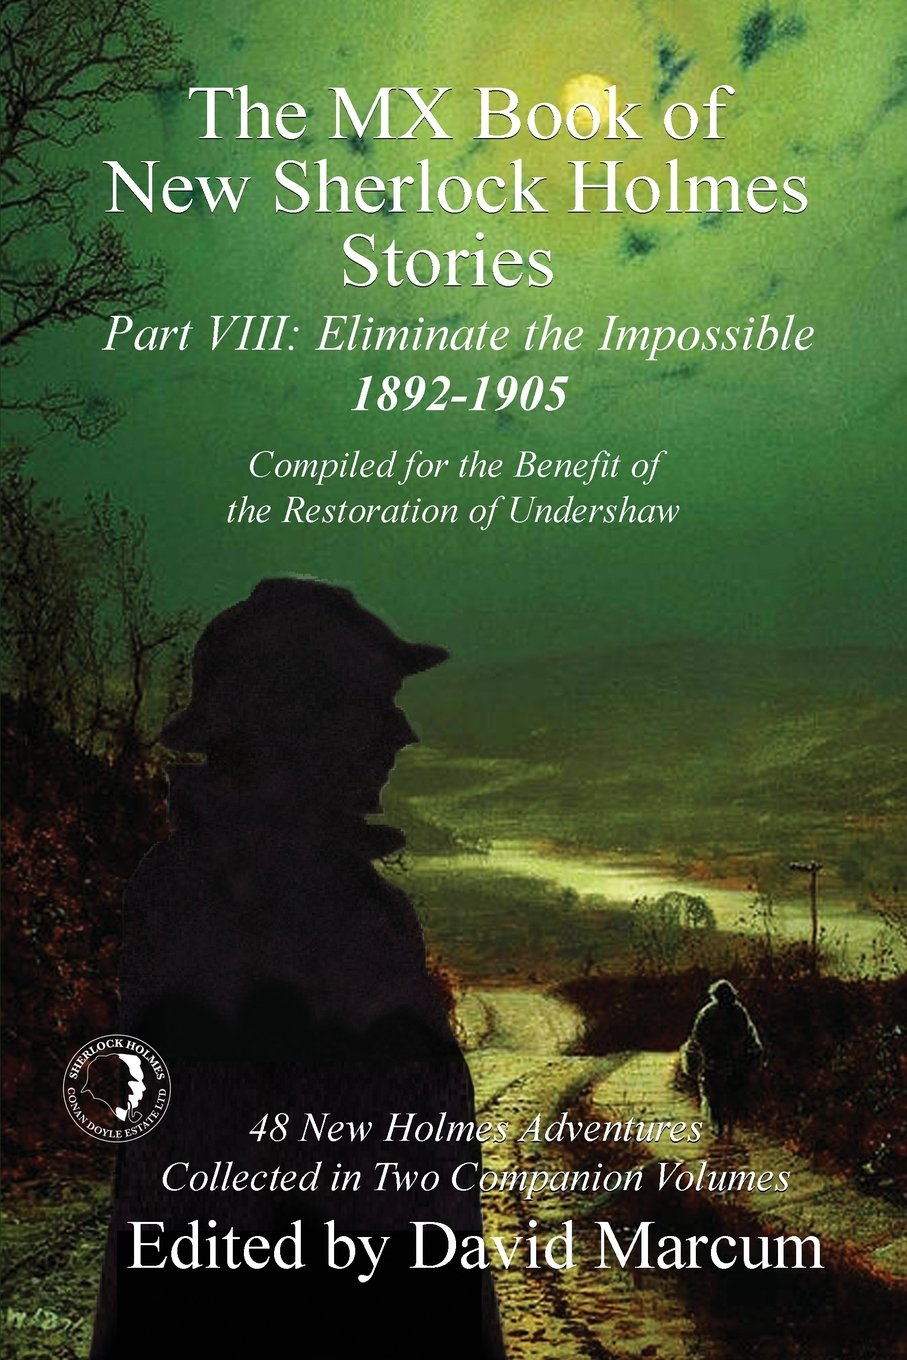 The MX Book of New Sherlock Holmes Stories - Part VIII: Eliminate The Impossible: 1892-1905 (MX Book of New Sherlock Holmes Stories Series) Paperback